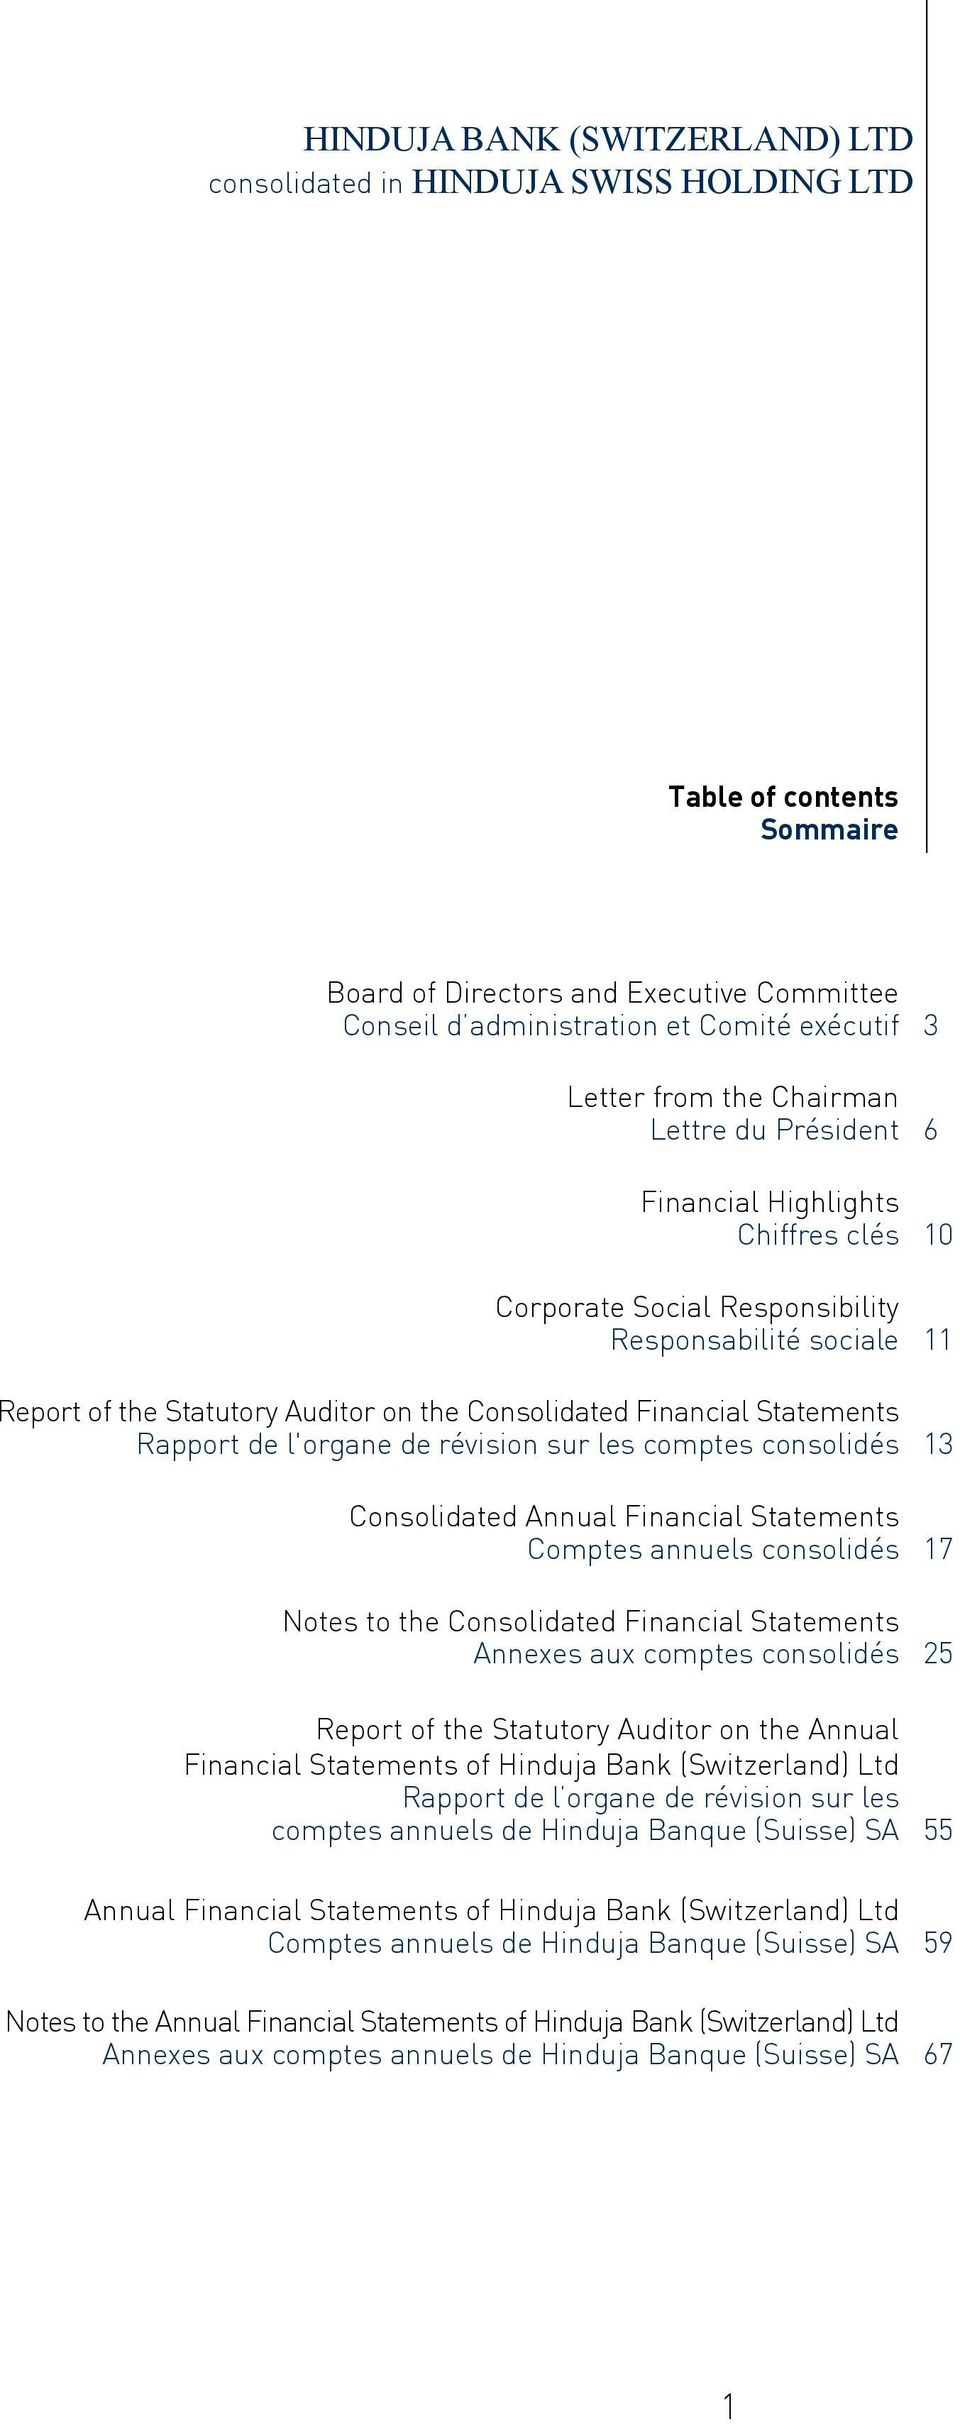 Statements Rapport de l'organe de révision sur les comptes consolidés 13 Consolidated Annual Financial Statements Comptes annuels consolidés 17 Notes to the Consolidated Financial Statements Annexes